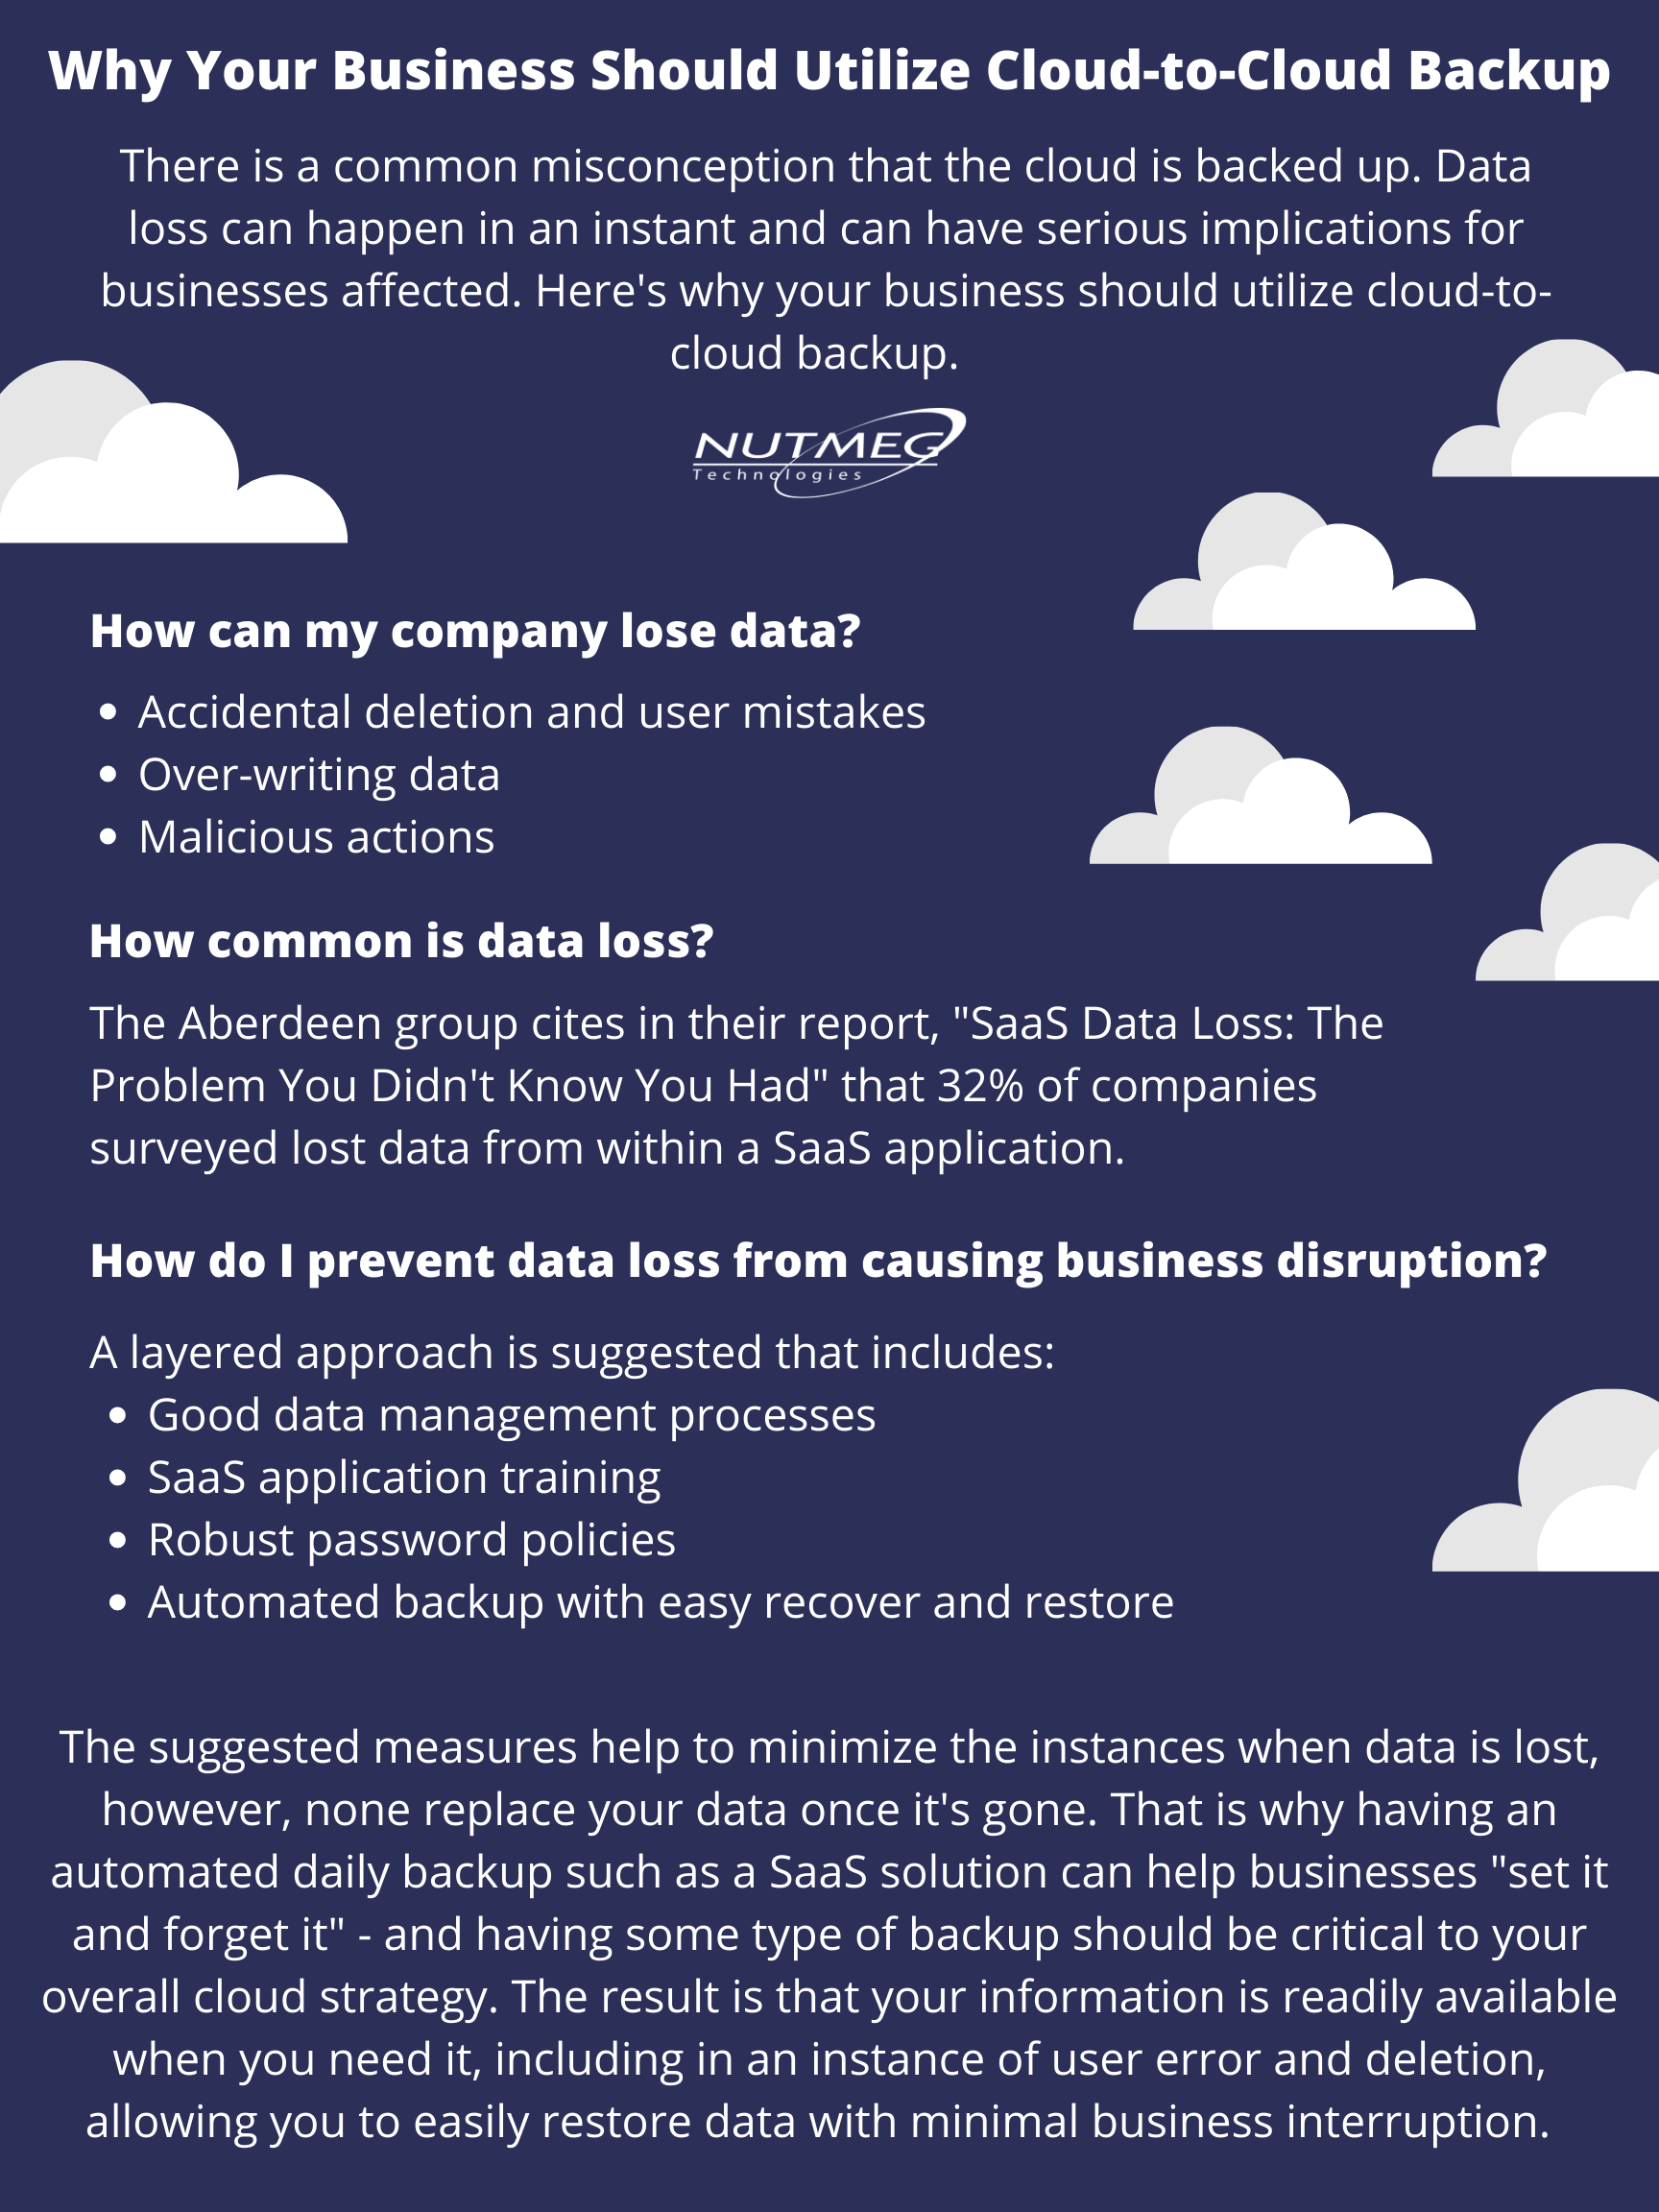 Why your business should utilize cloud to cloud backup